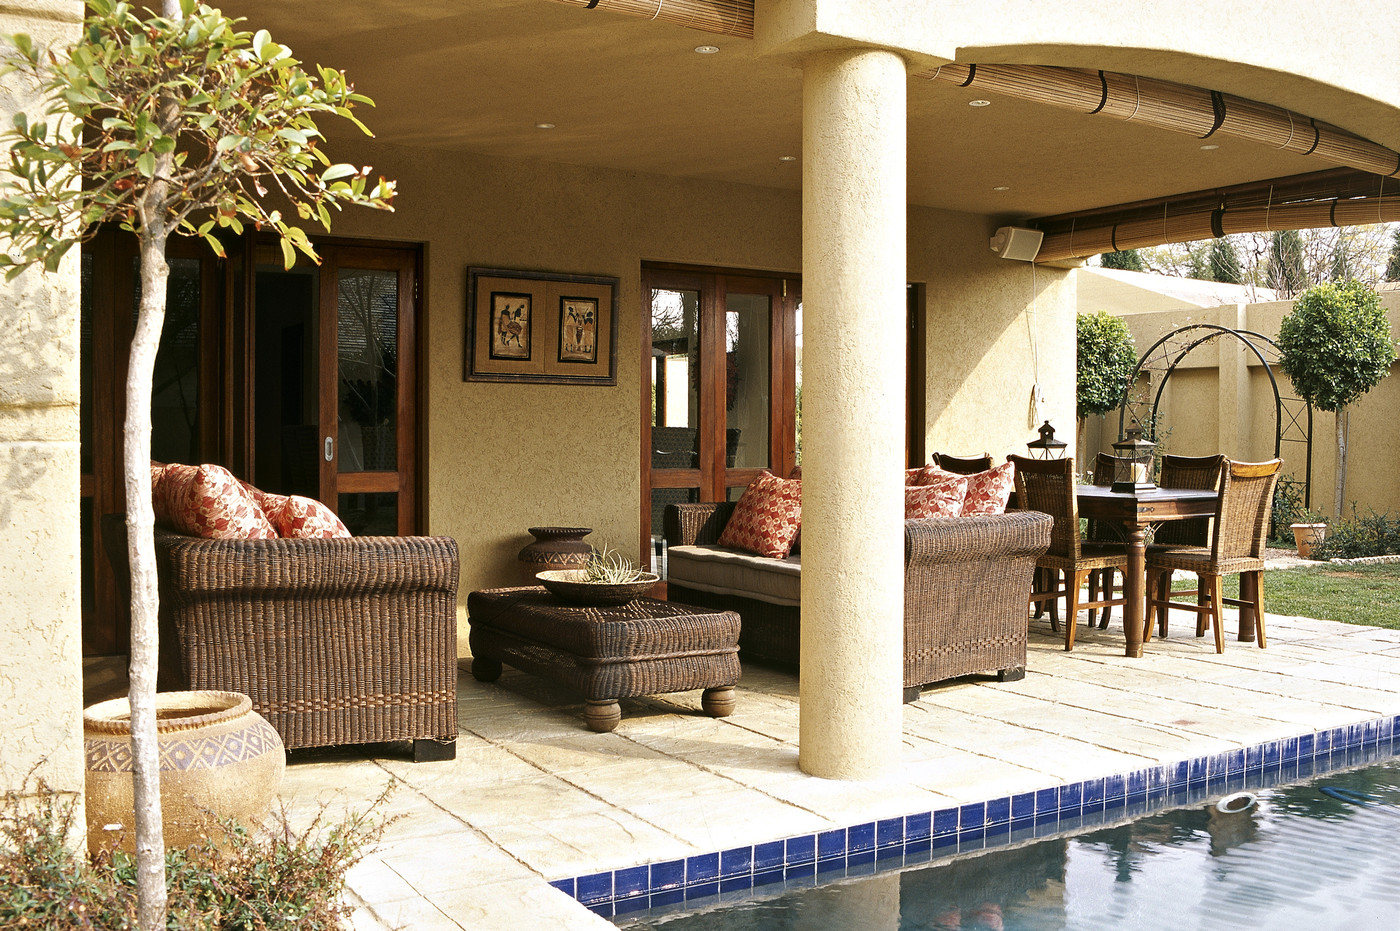 Contemporary Mediterranean Patio - Outdoor Patio Design ... on Modern Backyard Patio Ideas  id=97791